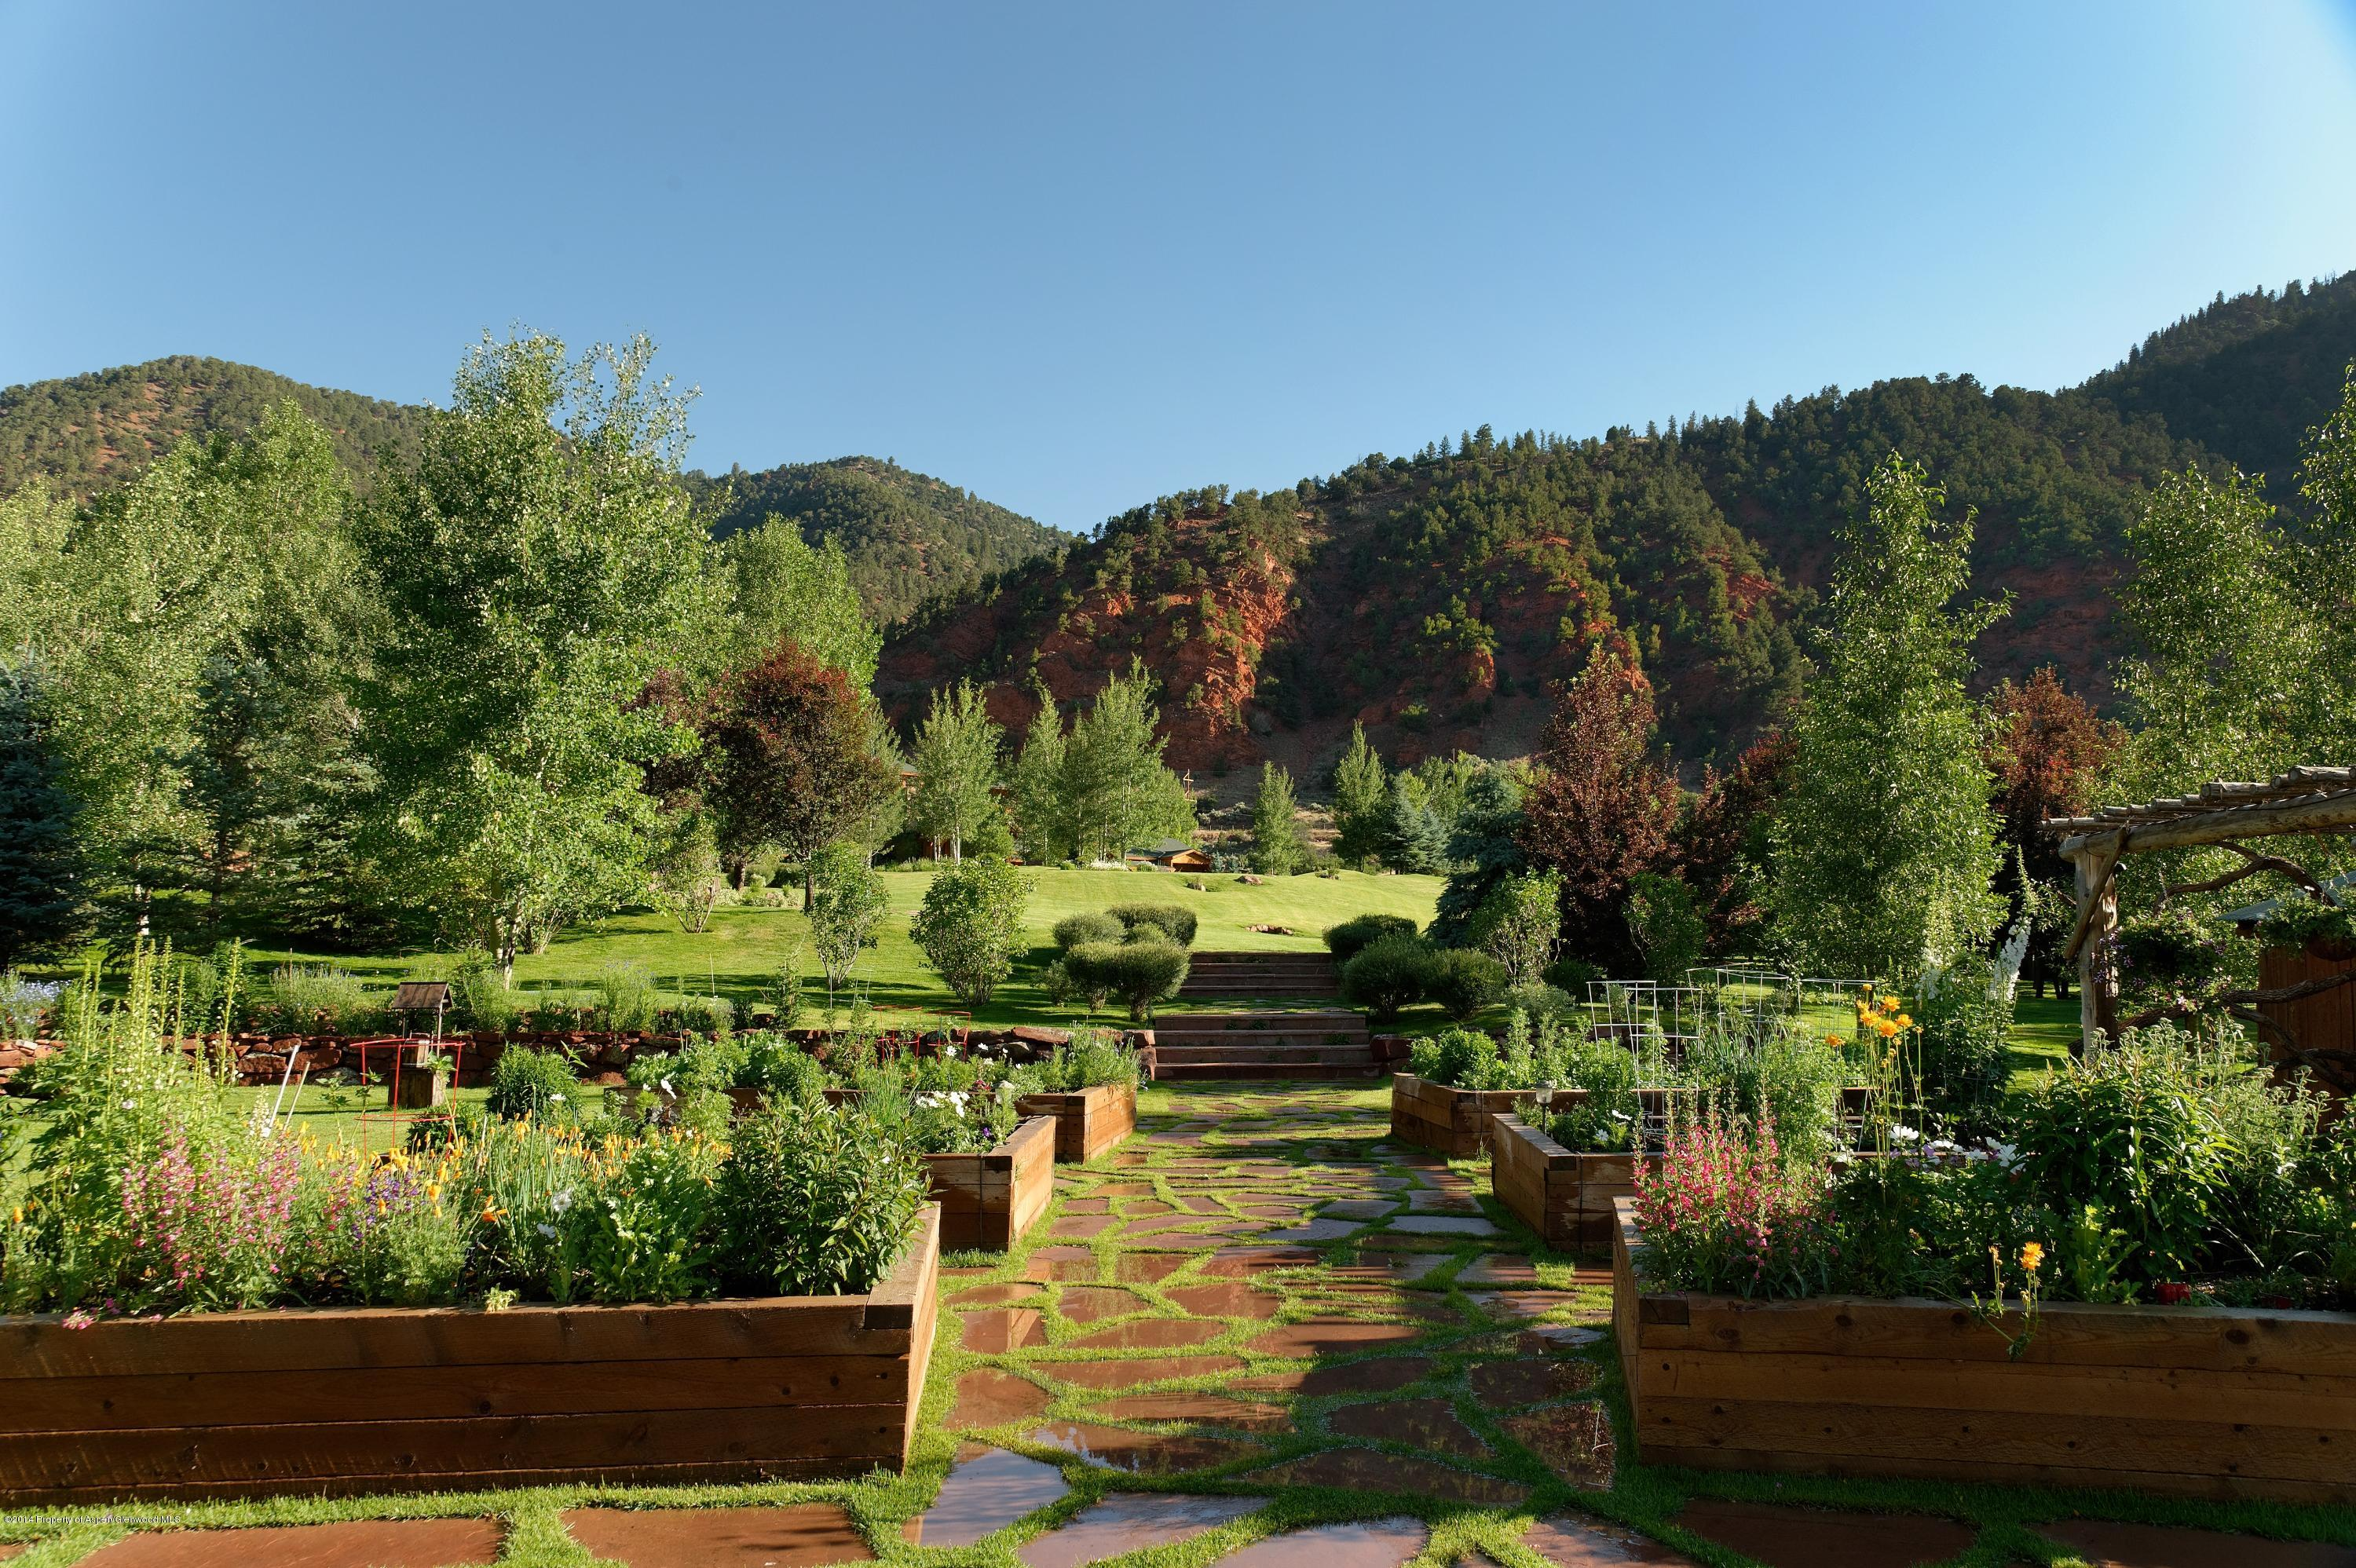 MLS# 135595 - 61 - 50 E River Ranch Road, Snowmass, CO 81654